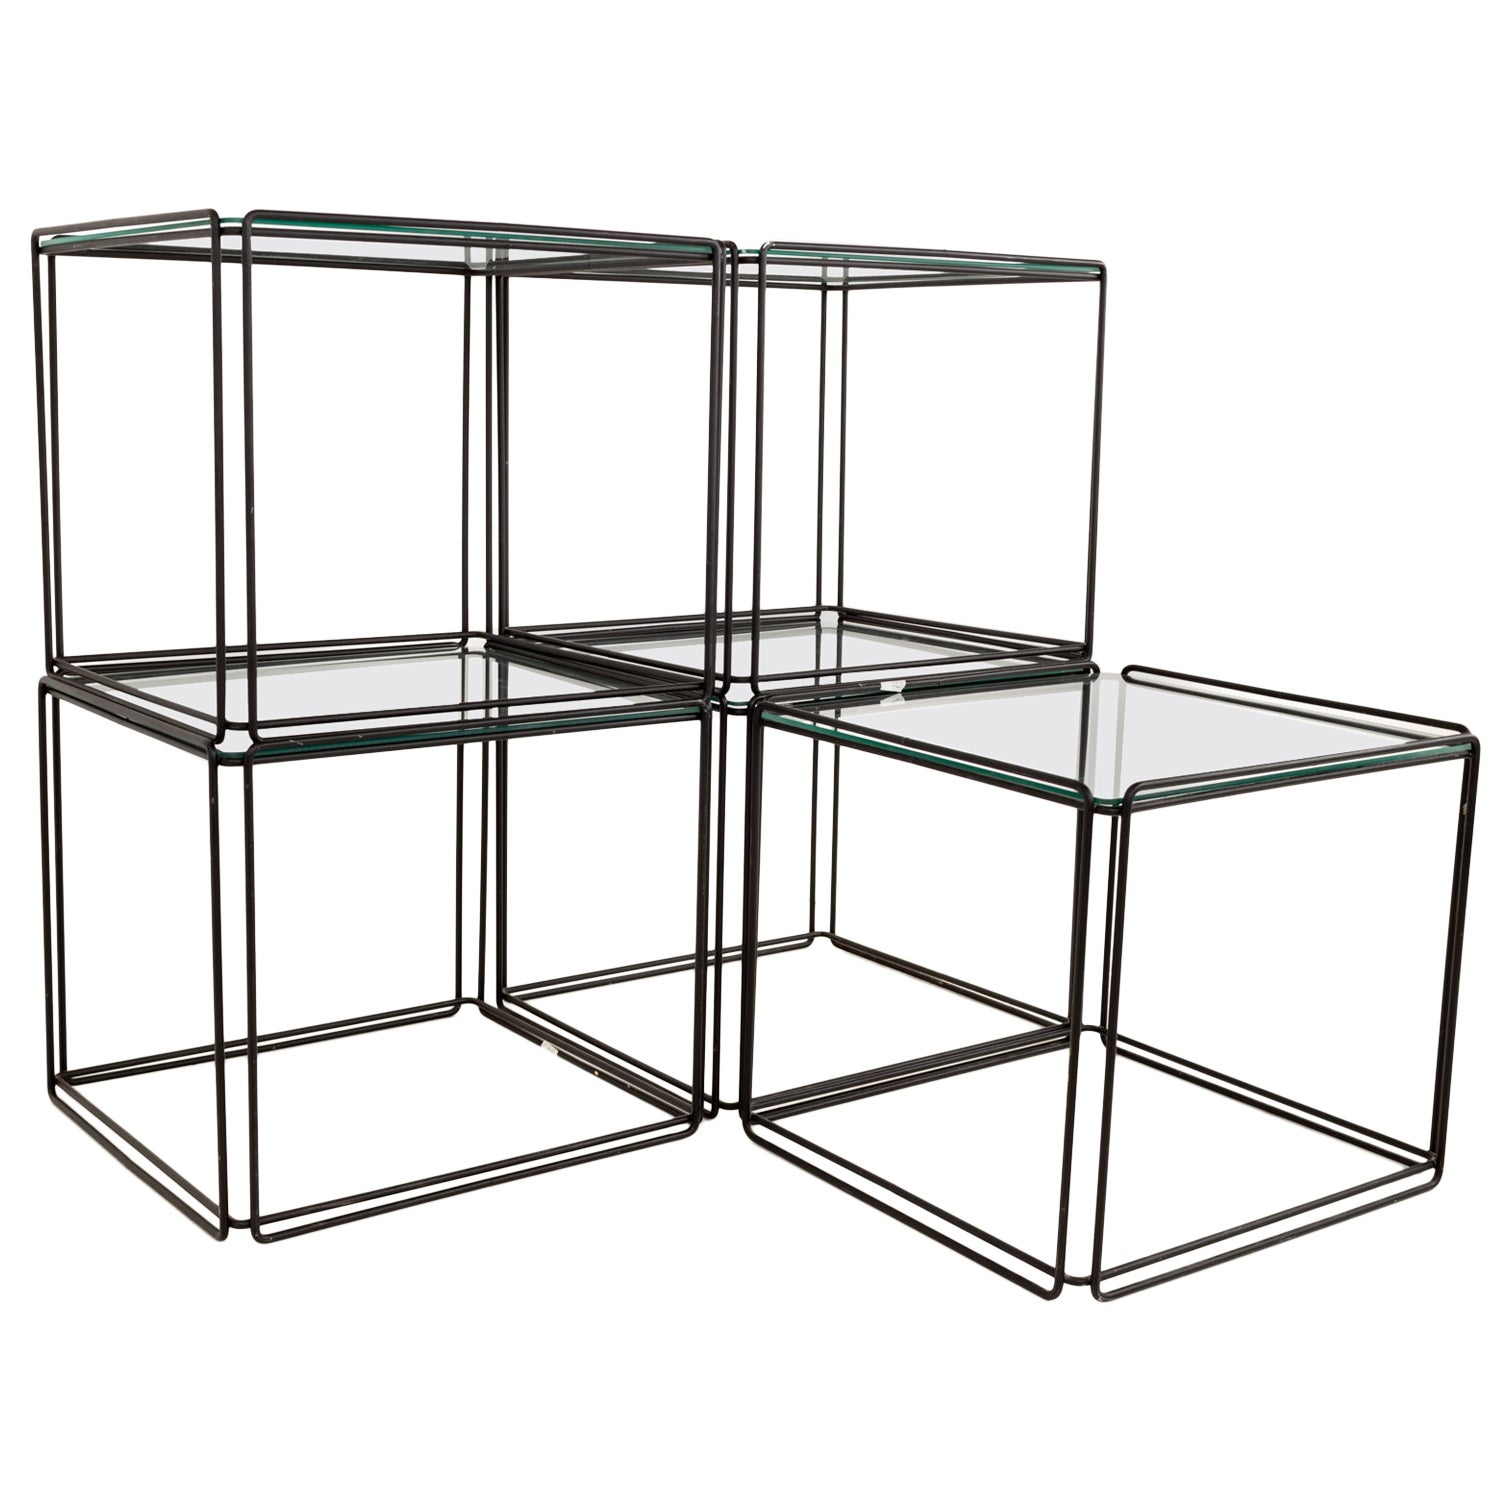 Max Sauze Isosceles MCM Iron Glass Stacking Side End Tables, Set of 5